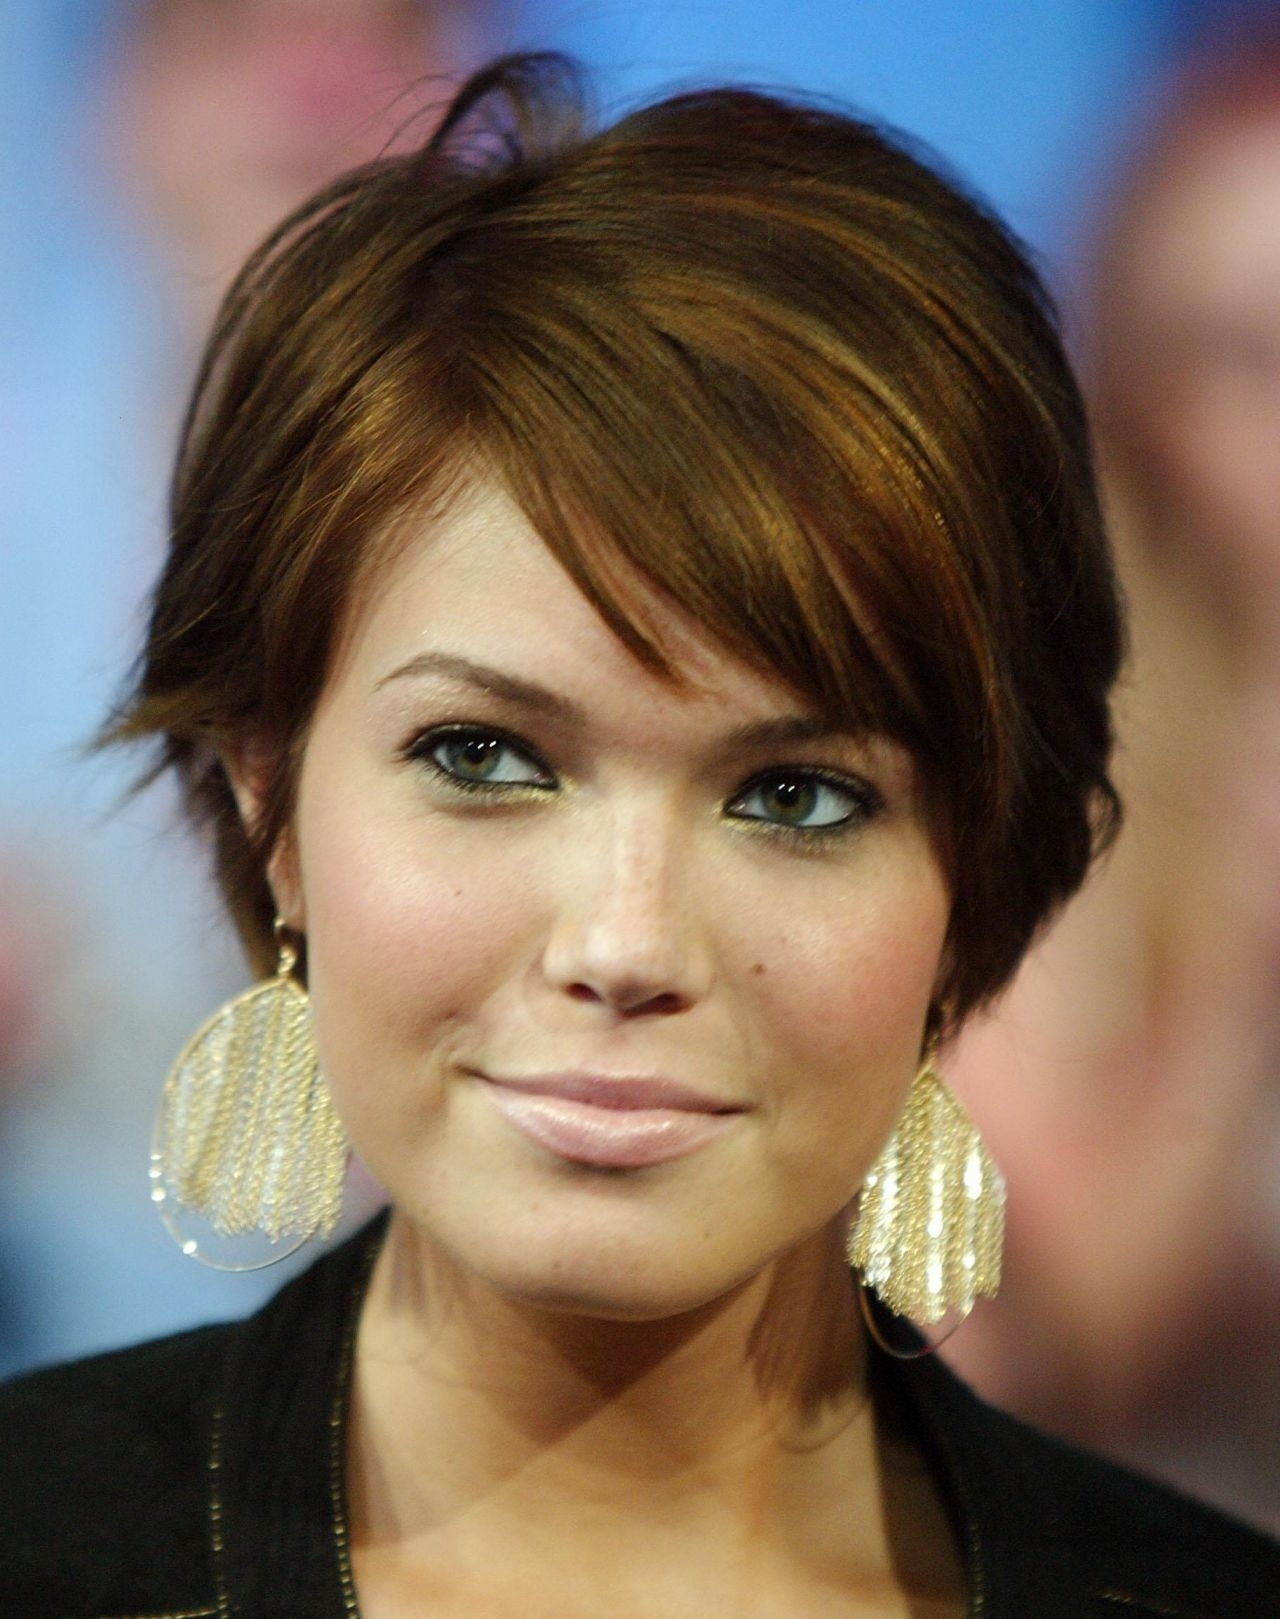 Women: 12 Best Hairstyles For Women Over 40 Haircuts For Fine Thin pertaining to Hairstyle For Round Face Over 40